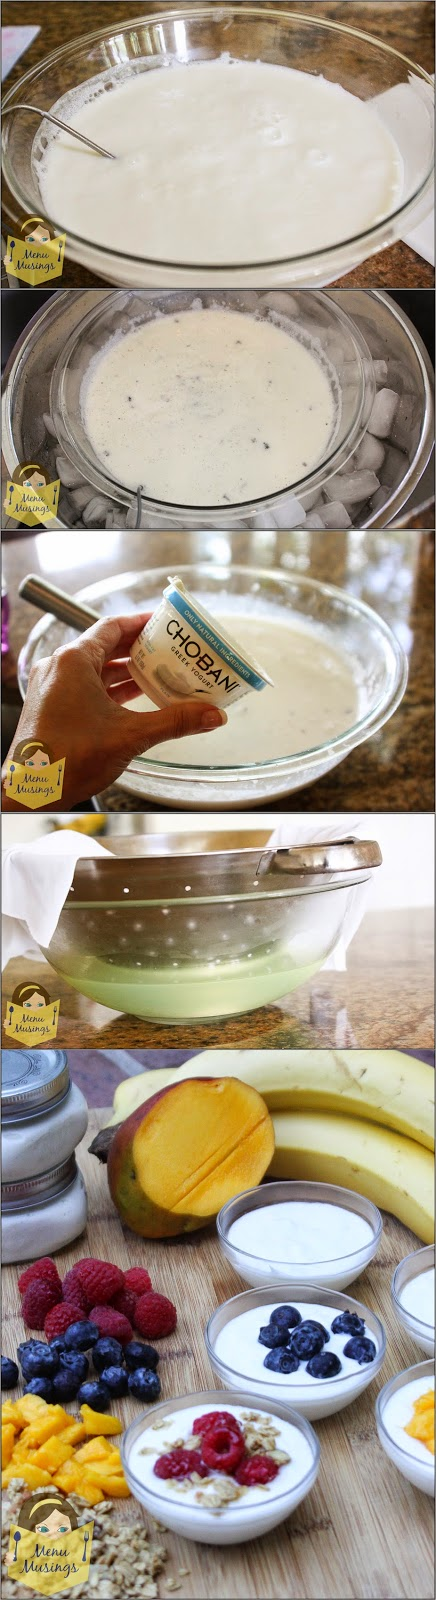 http://menumusings.blogspot.com/2014/06/super-easy-greek-style-homemade-yogurt.html